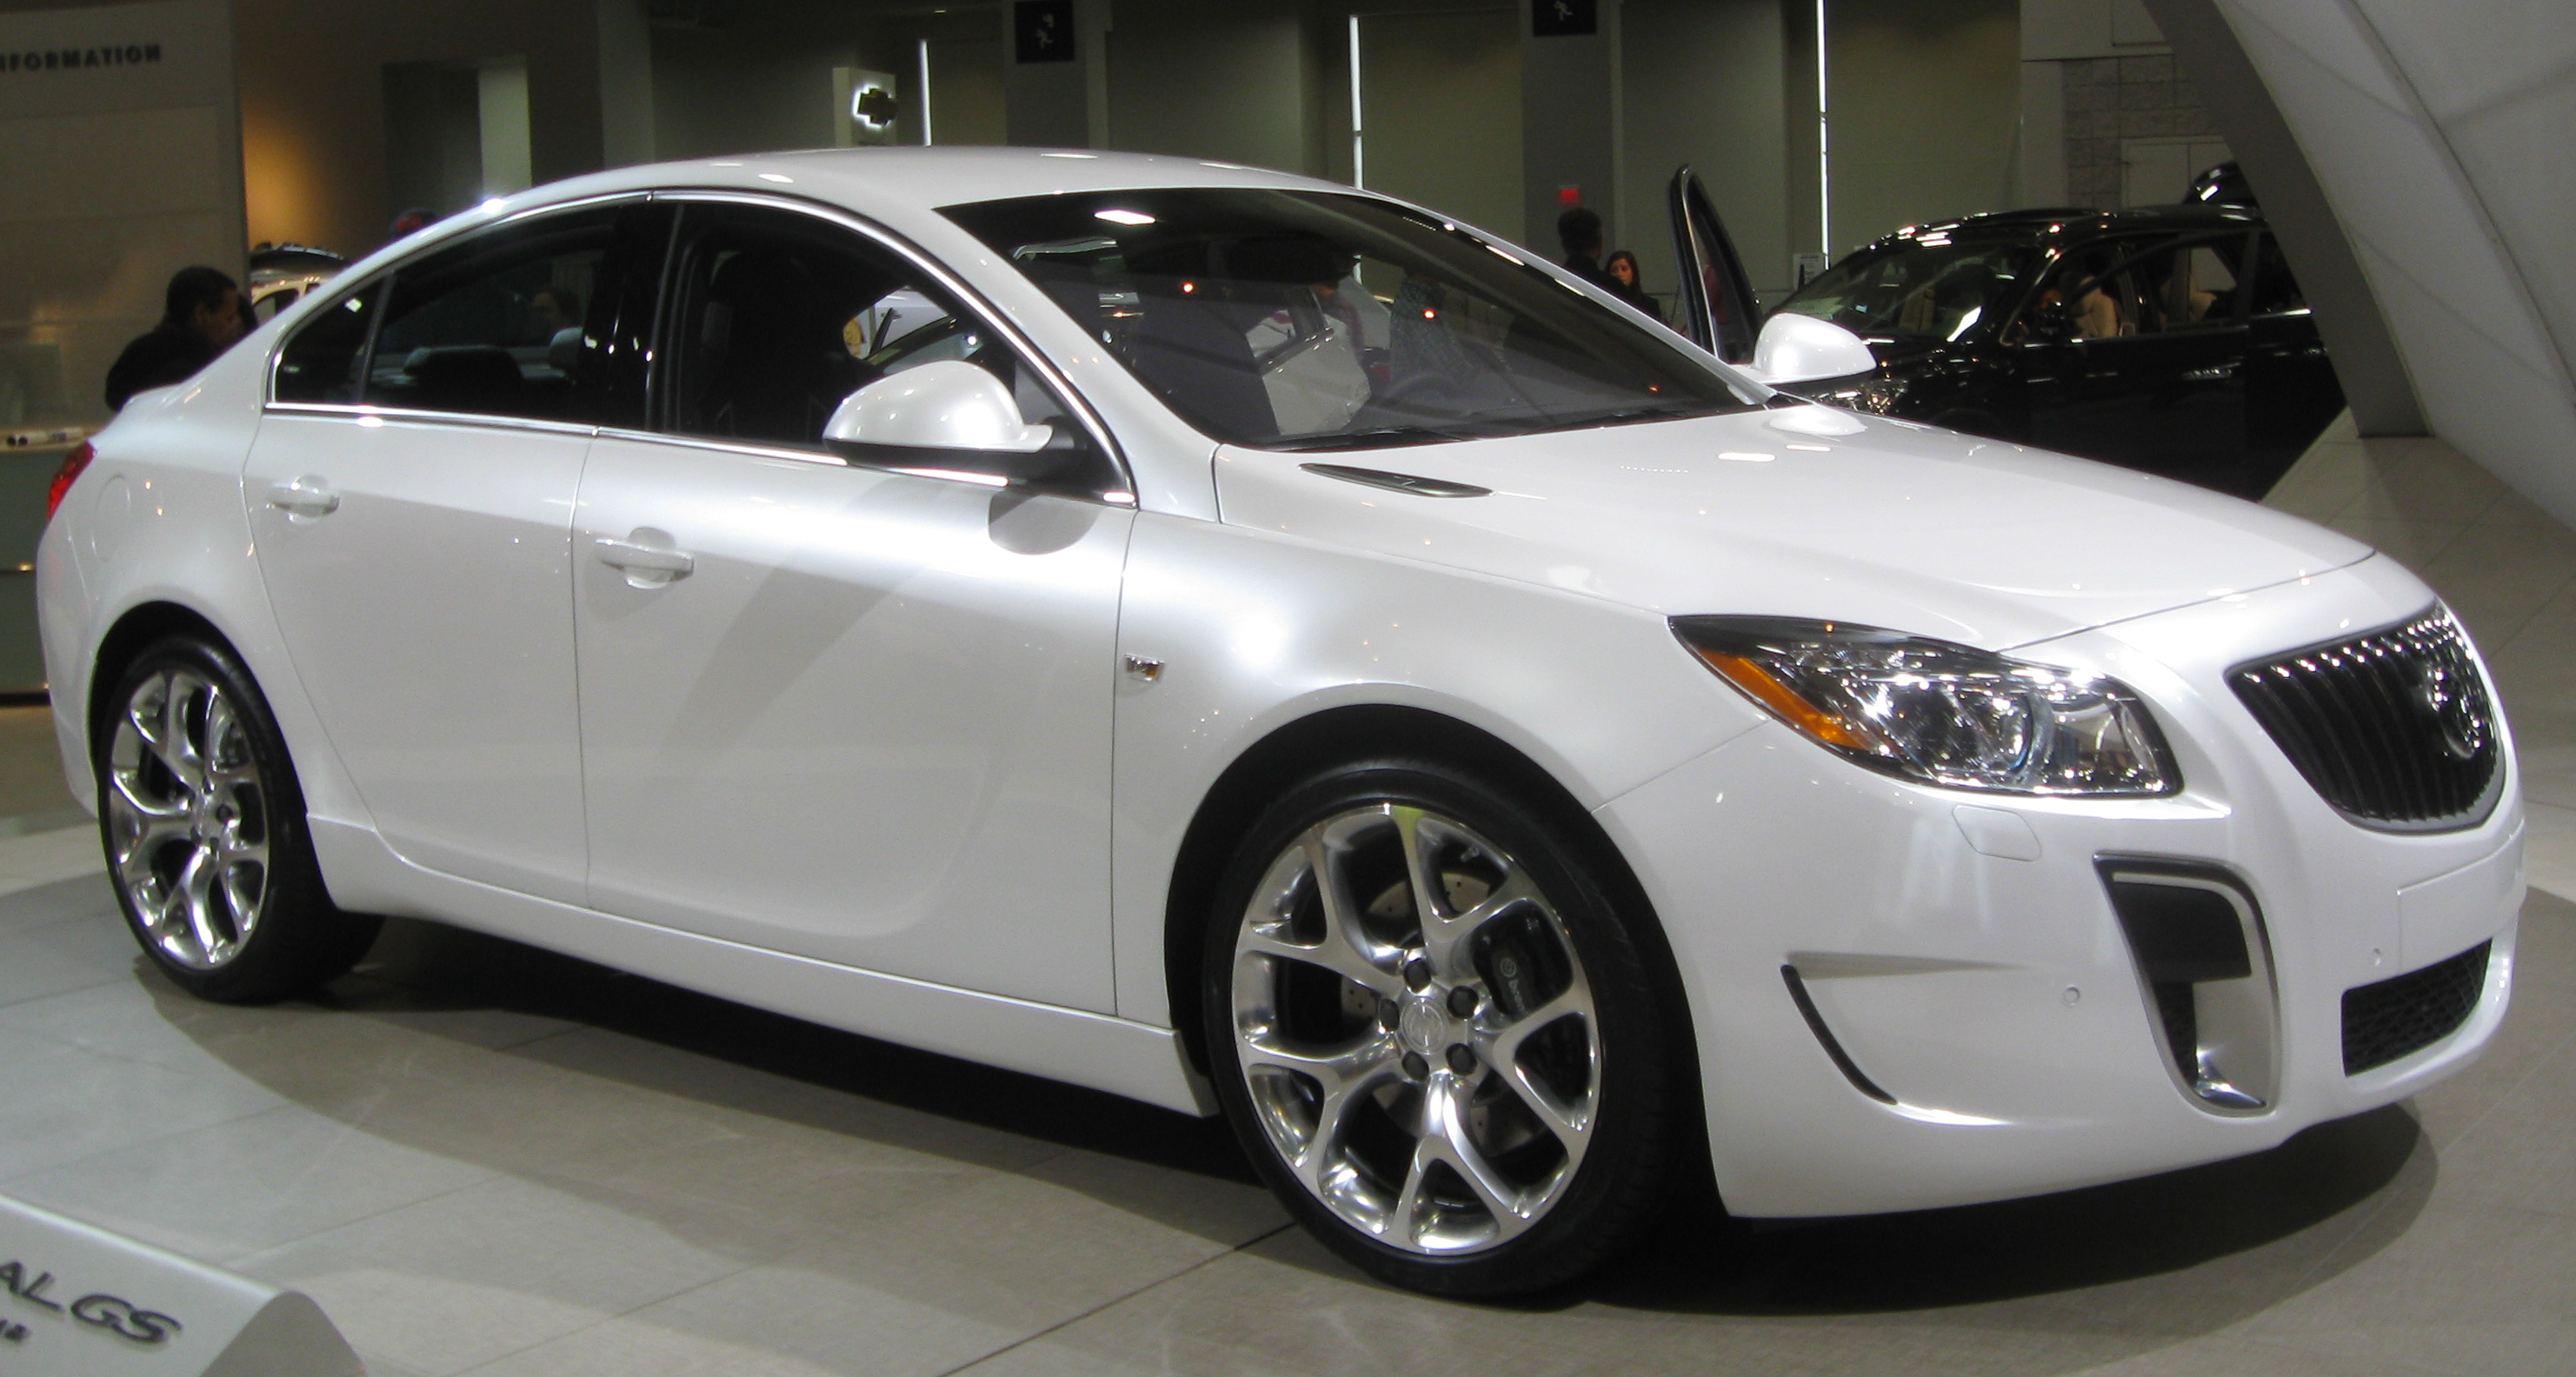 File:2011 Buick Regal GS 1 -- 2010 DC.jpg - Wikimedia Commons